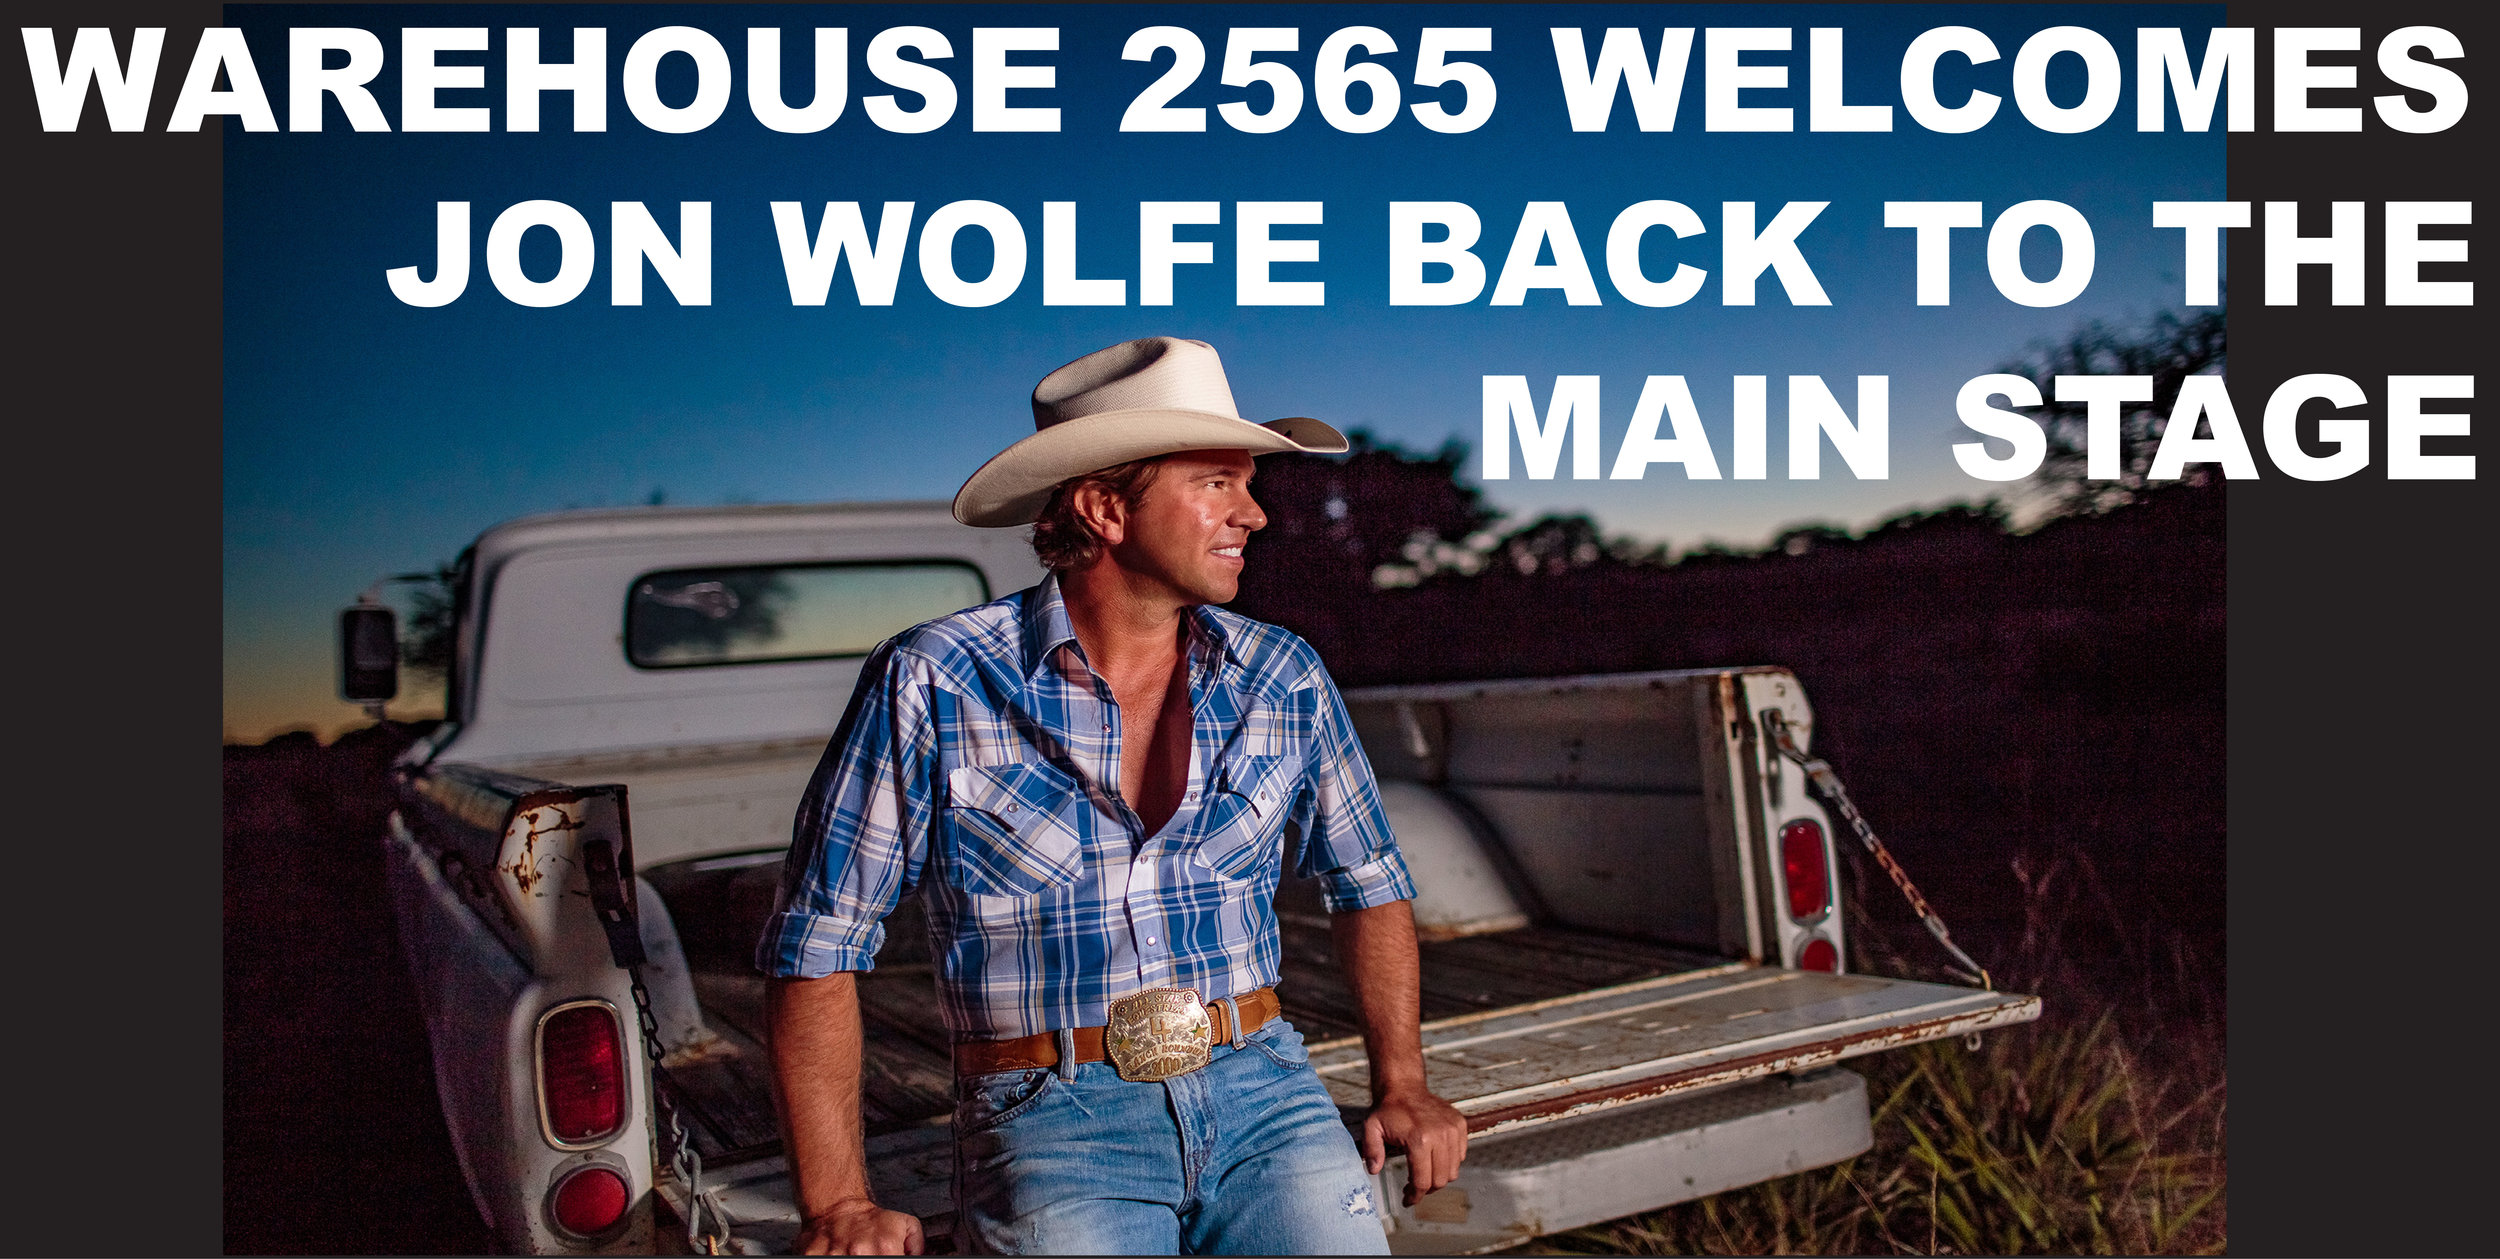 """Jon Wolfe set to bring that REAL country music all the way from Texas to Western CO! This will be one of those can't miss kind of shows you'll talk about """"remember when we saw him at the Warehouse"""" Tickets go on sale 7/5 Get em while they last!"""